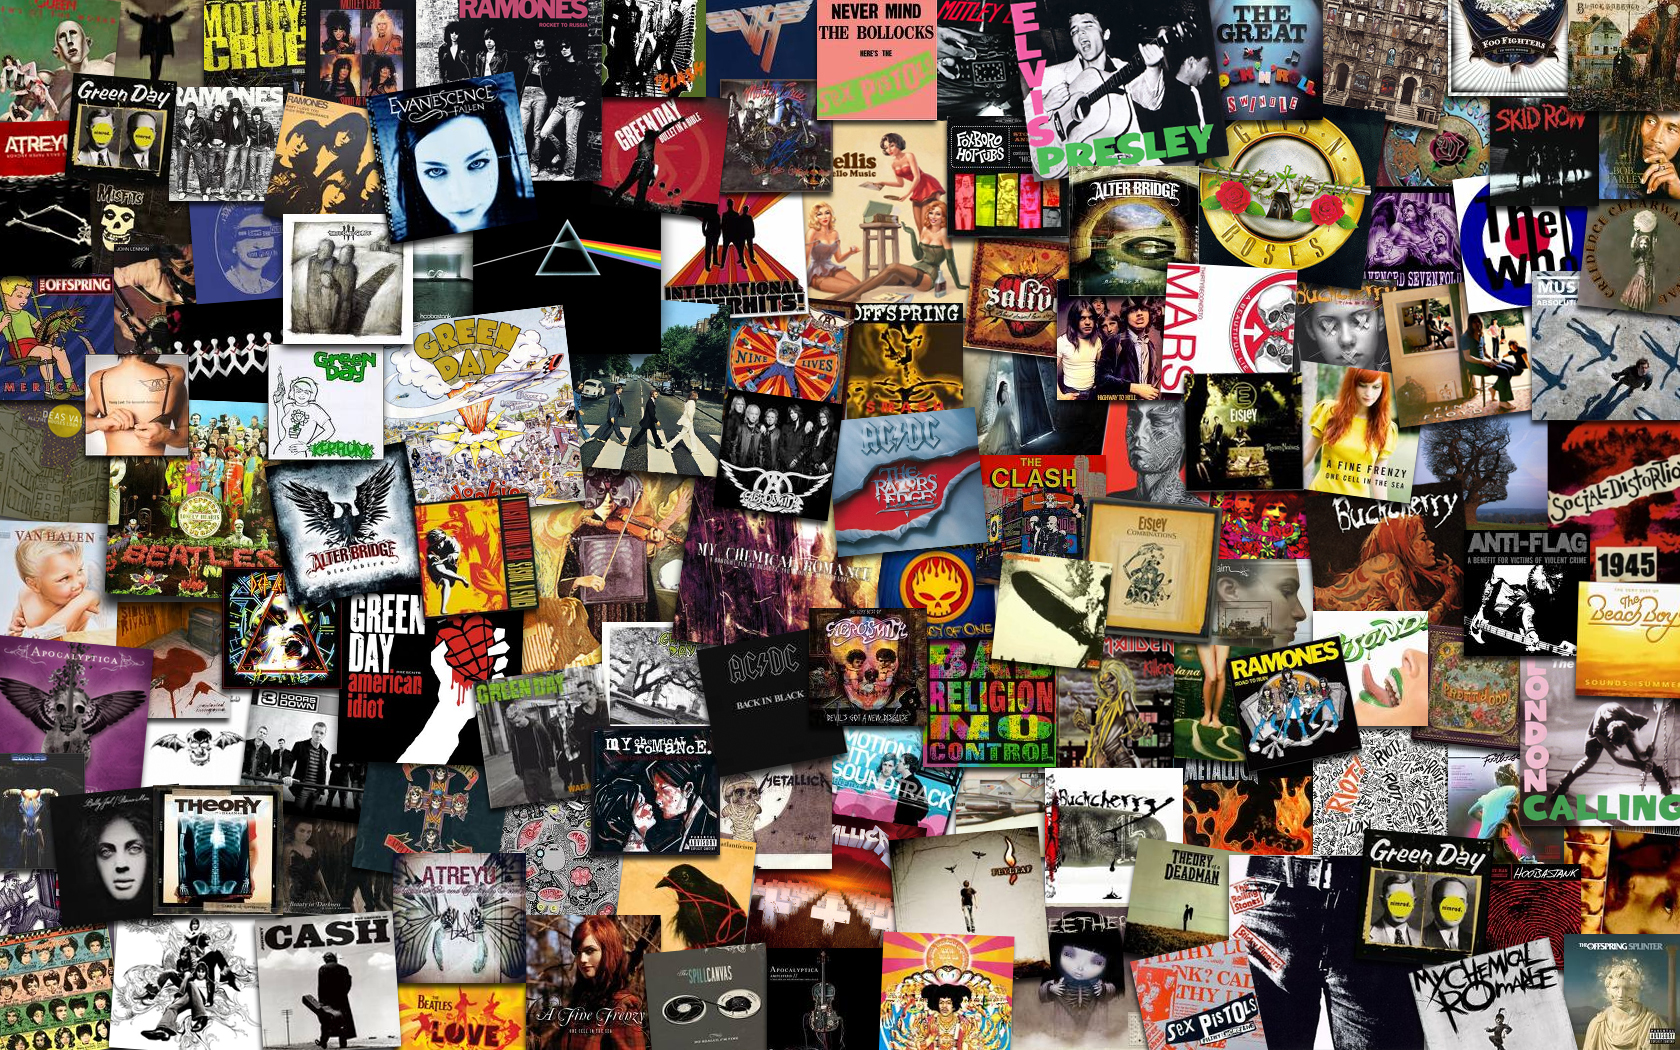 Collage Computer Wallpapers Desktop Backgrounds 1680x1050 ID 1680x1050